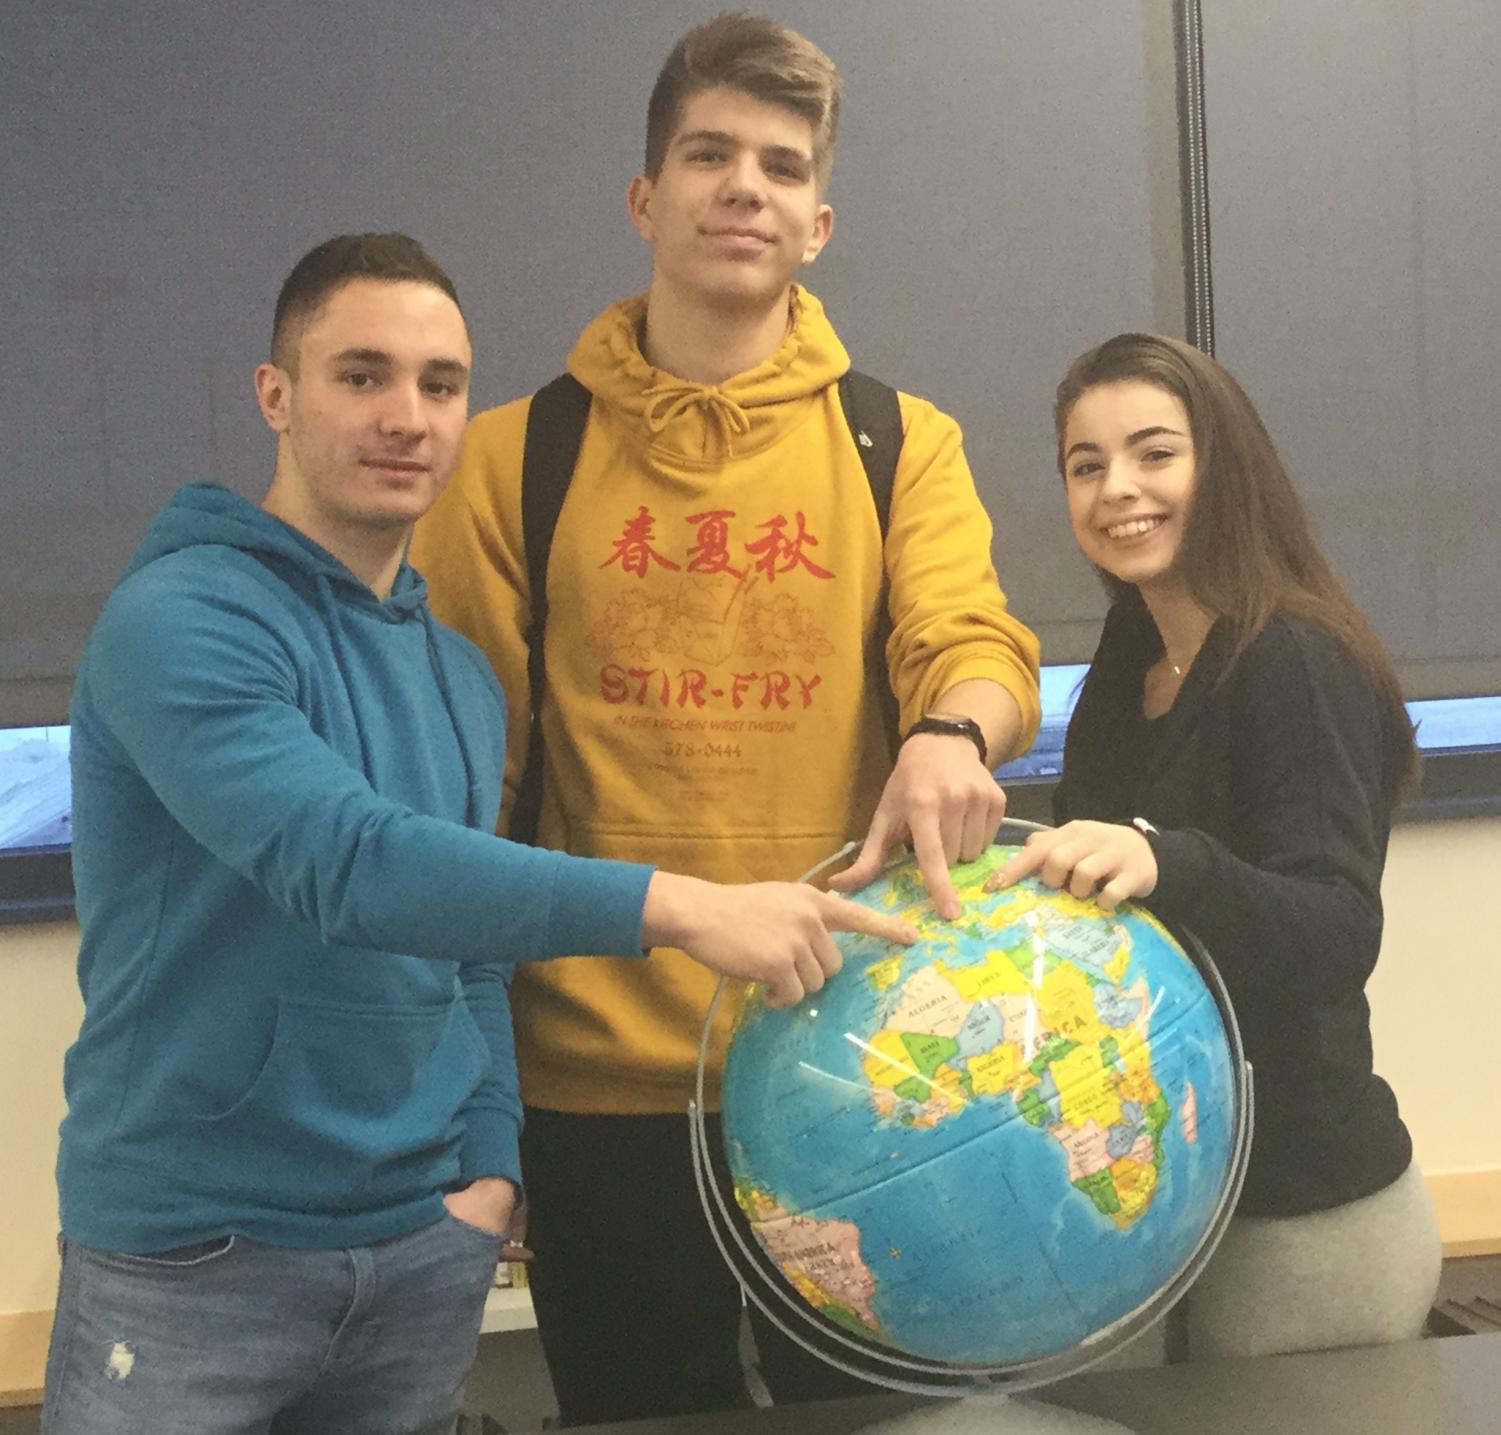 The three foreign exchange students at Johnston: Eduard Stancu from Italy, Aleksa Dogandzic from Serbia, and Anastasia Bilak from Ukraine.